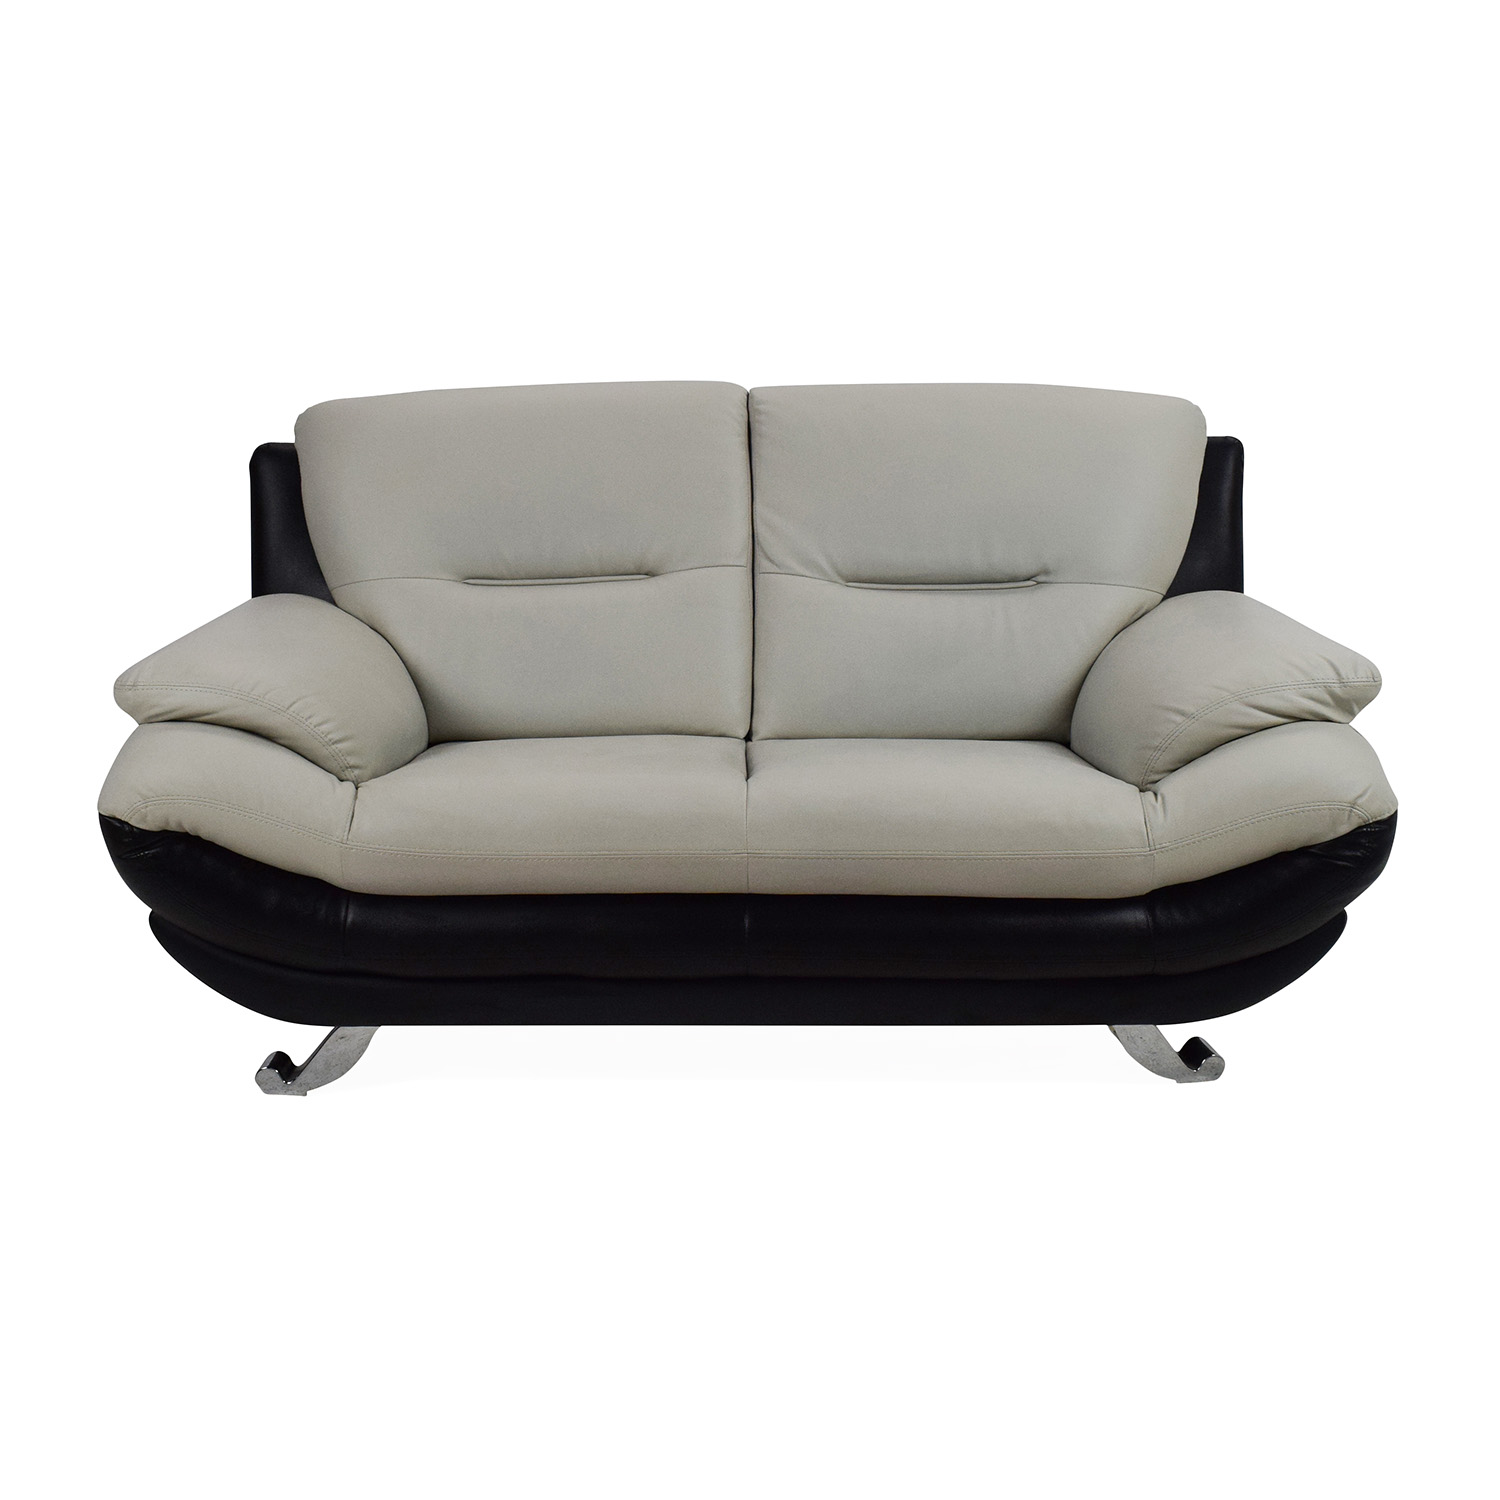 62% OFF - Modern Leather 2-Seater Couch / Sofas